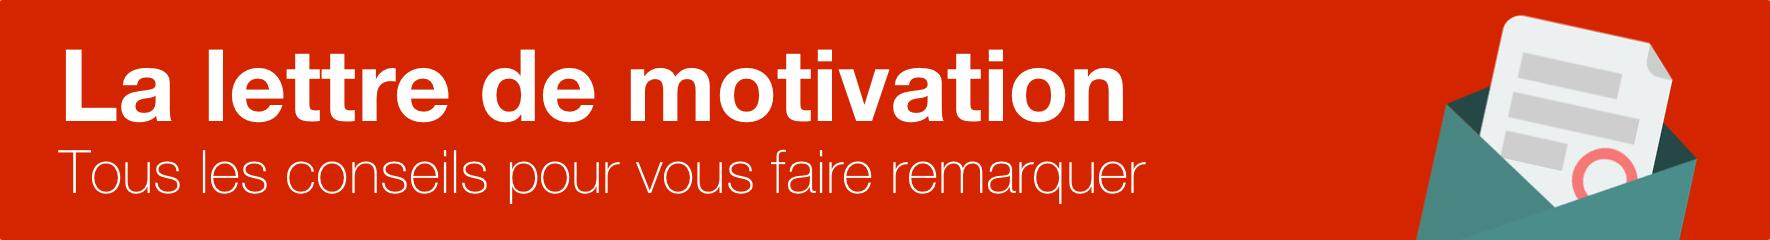 Lettre de motivation cover